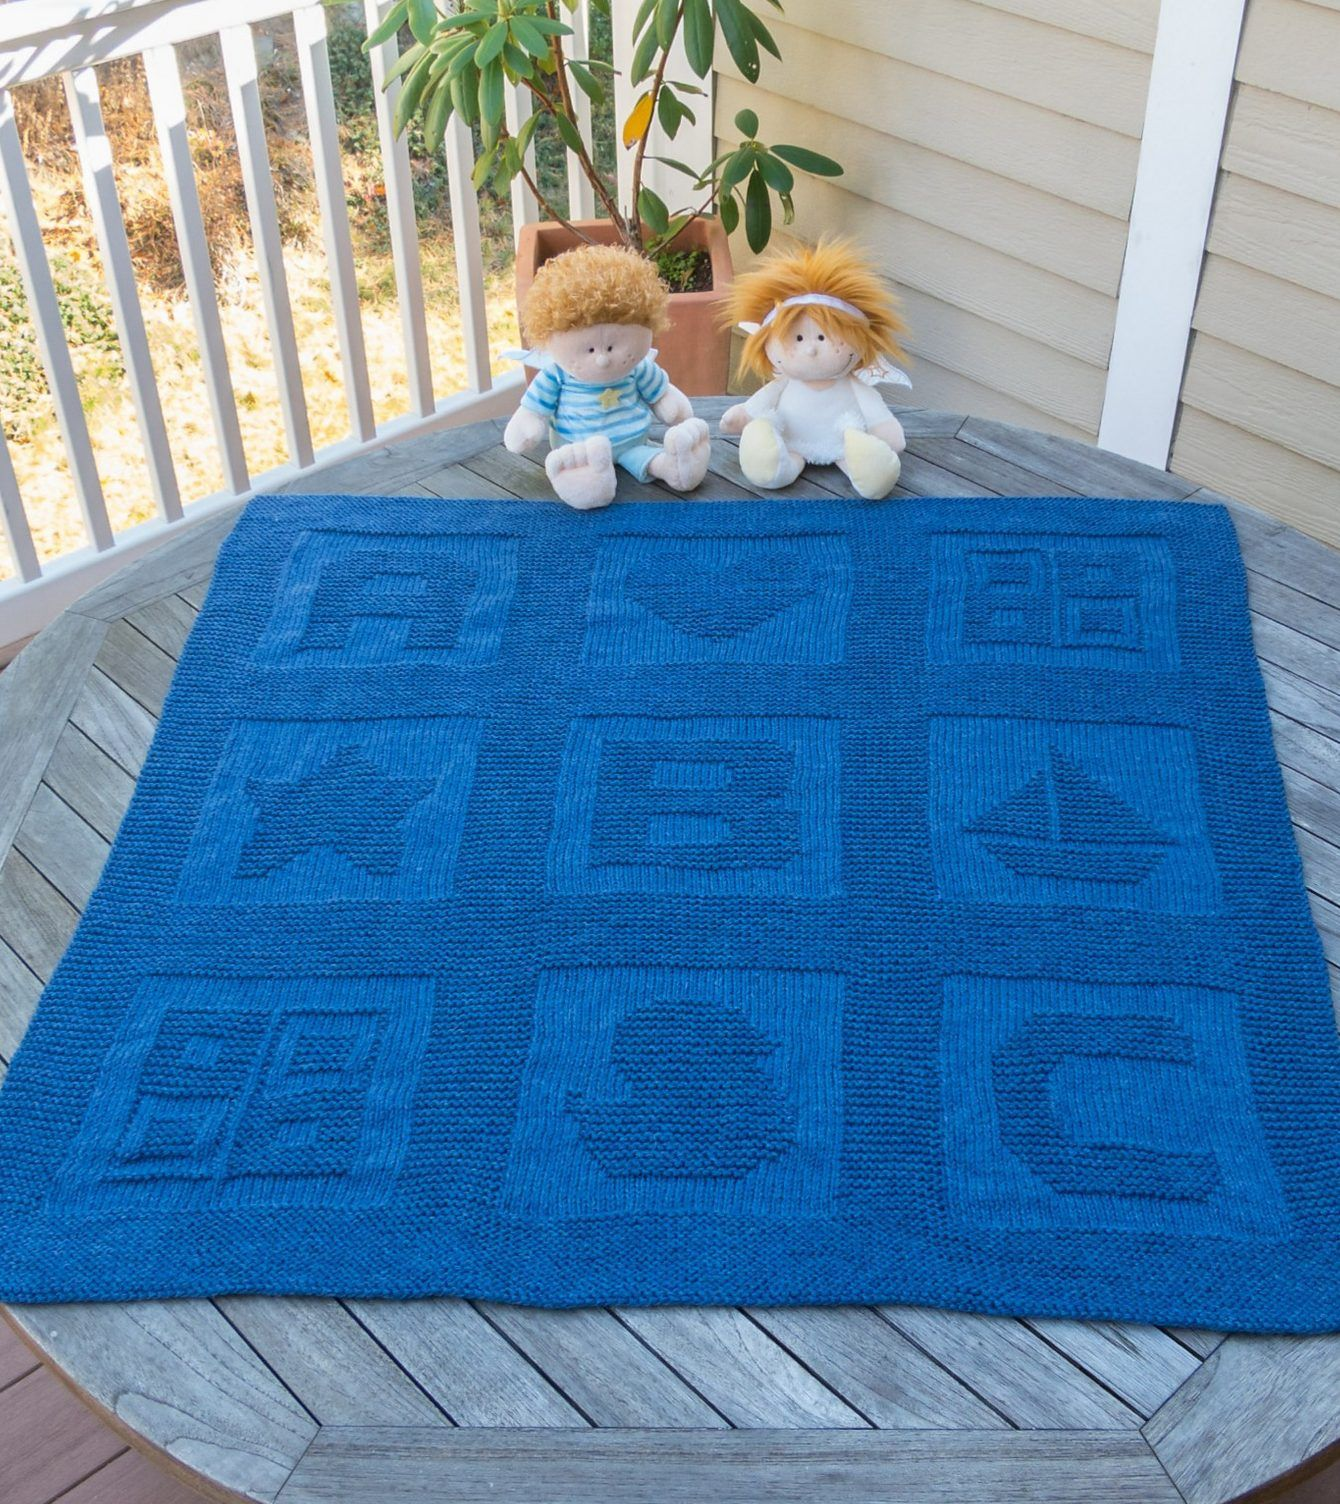 Easy Baby Blanket Knitting Patterns | Mantas para bebes, Manta y ...